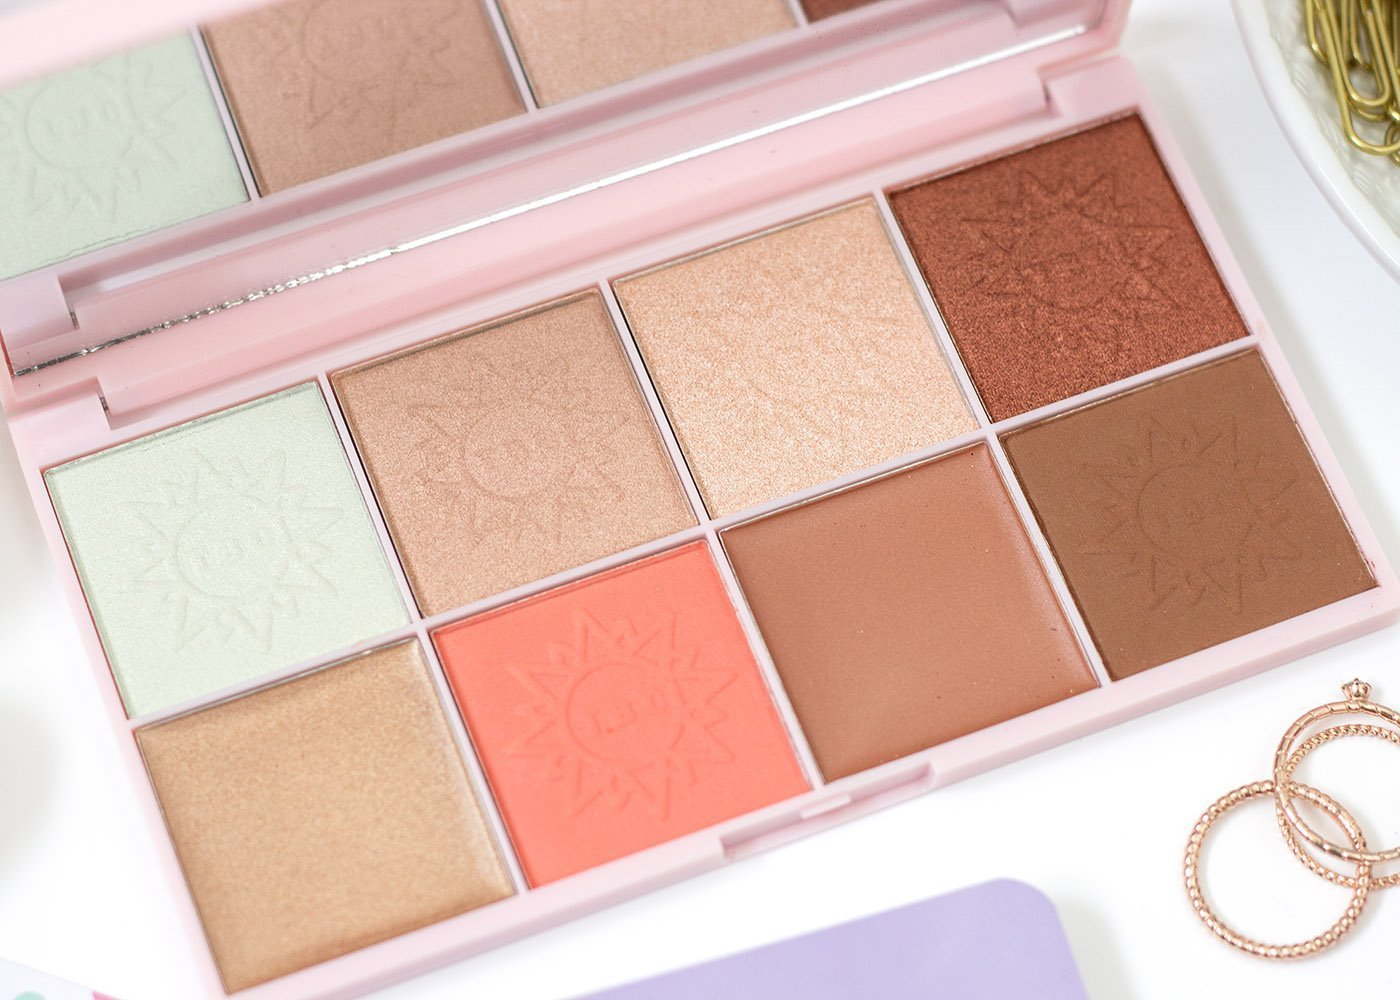 The Beauty Crop Travel Tea Palette in Moroccan Sun